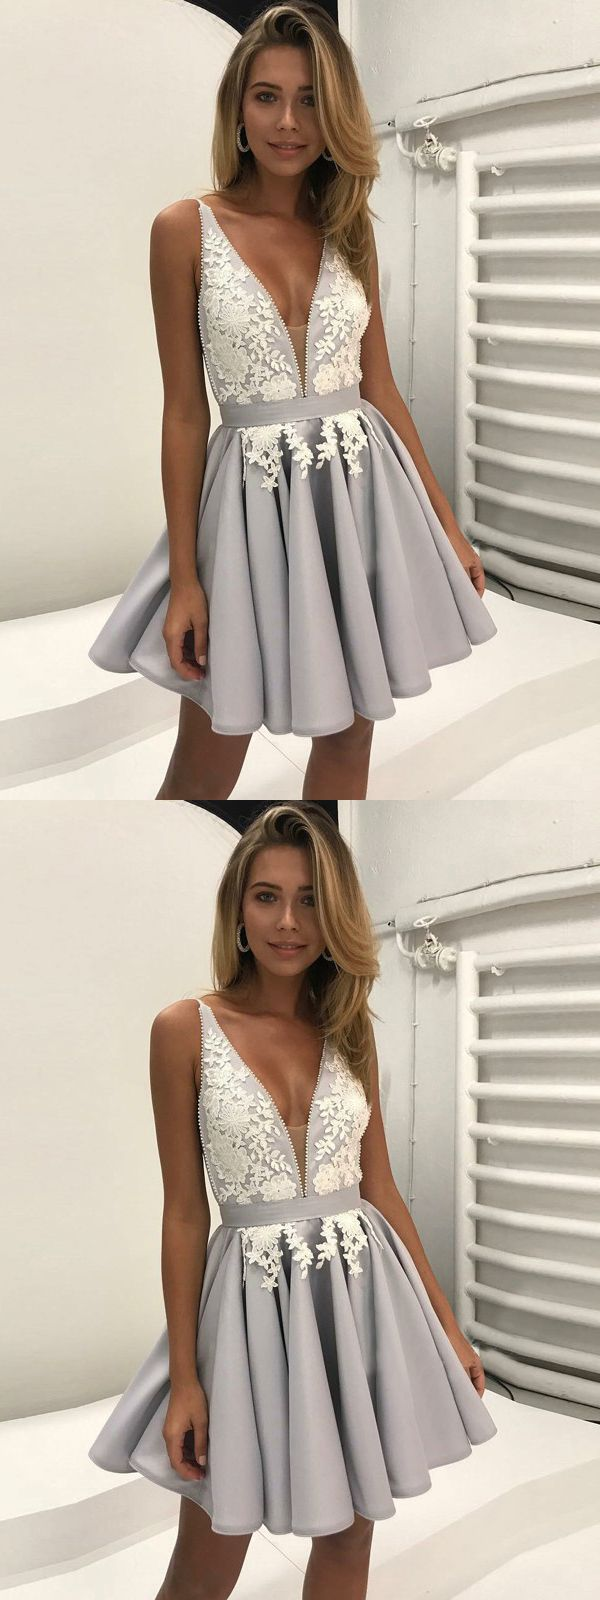 homecoming dresses,short homecoming dresses,cheap homecoming dresses,v-neck homecoming dresses,fashion homecoming dresses,